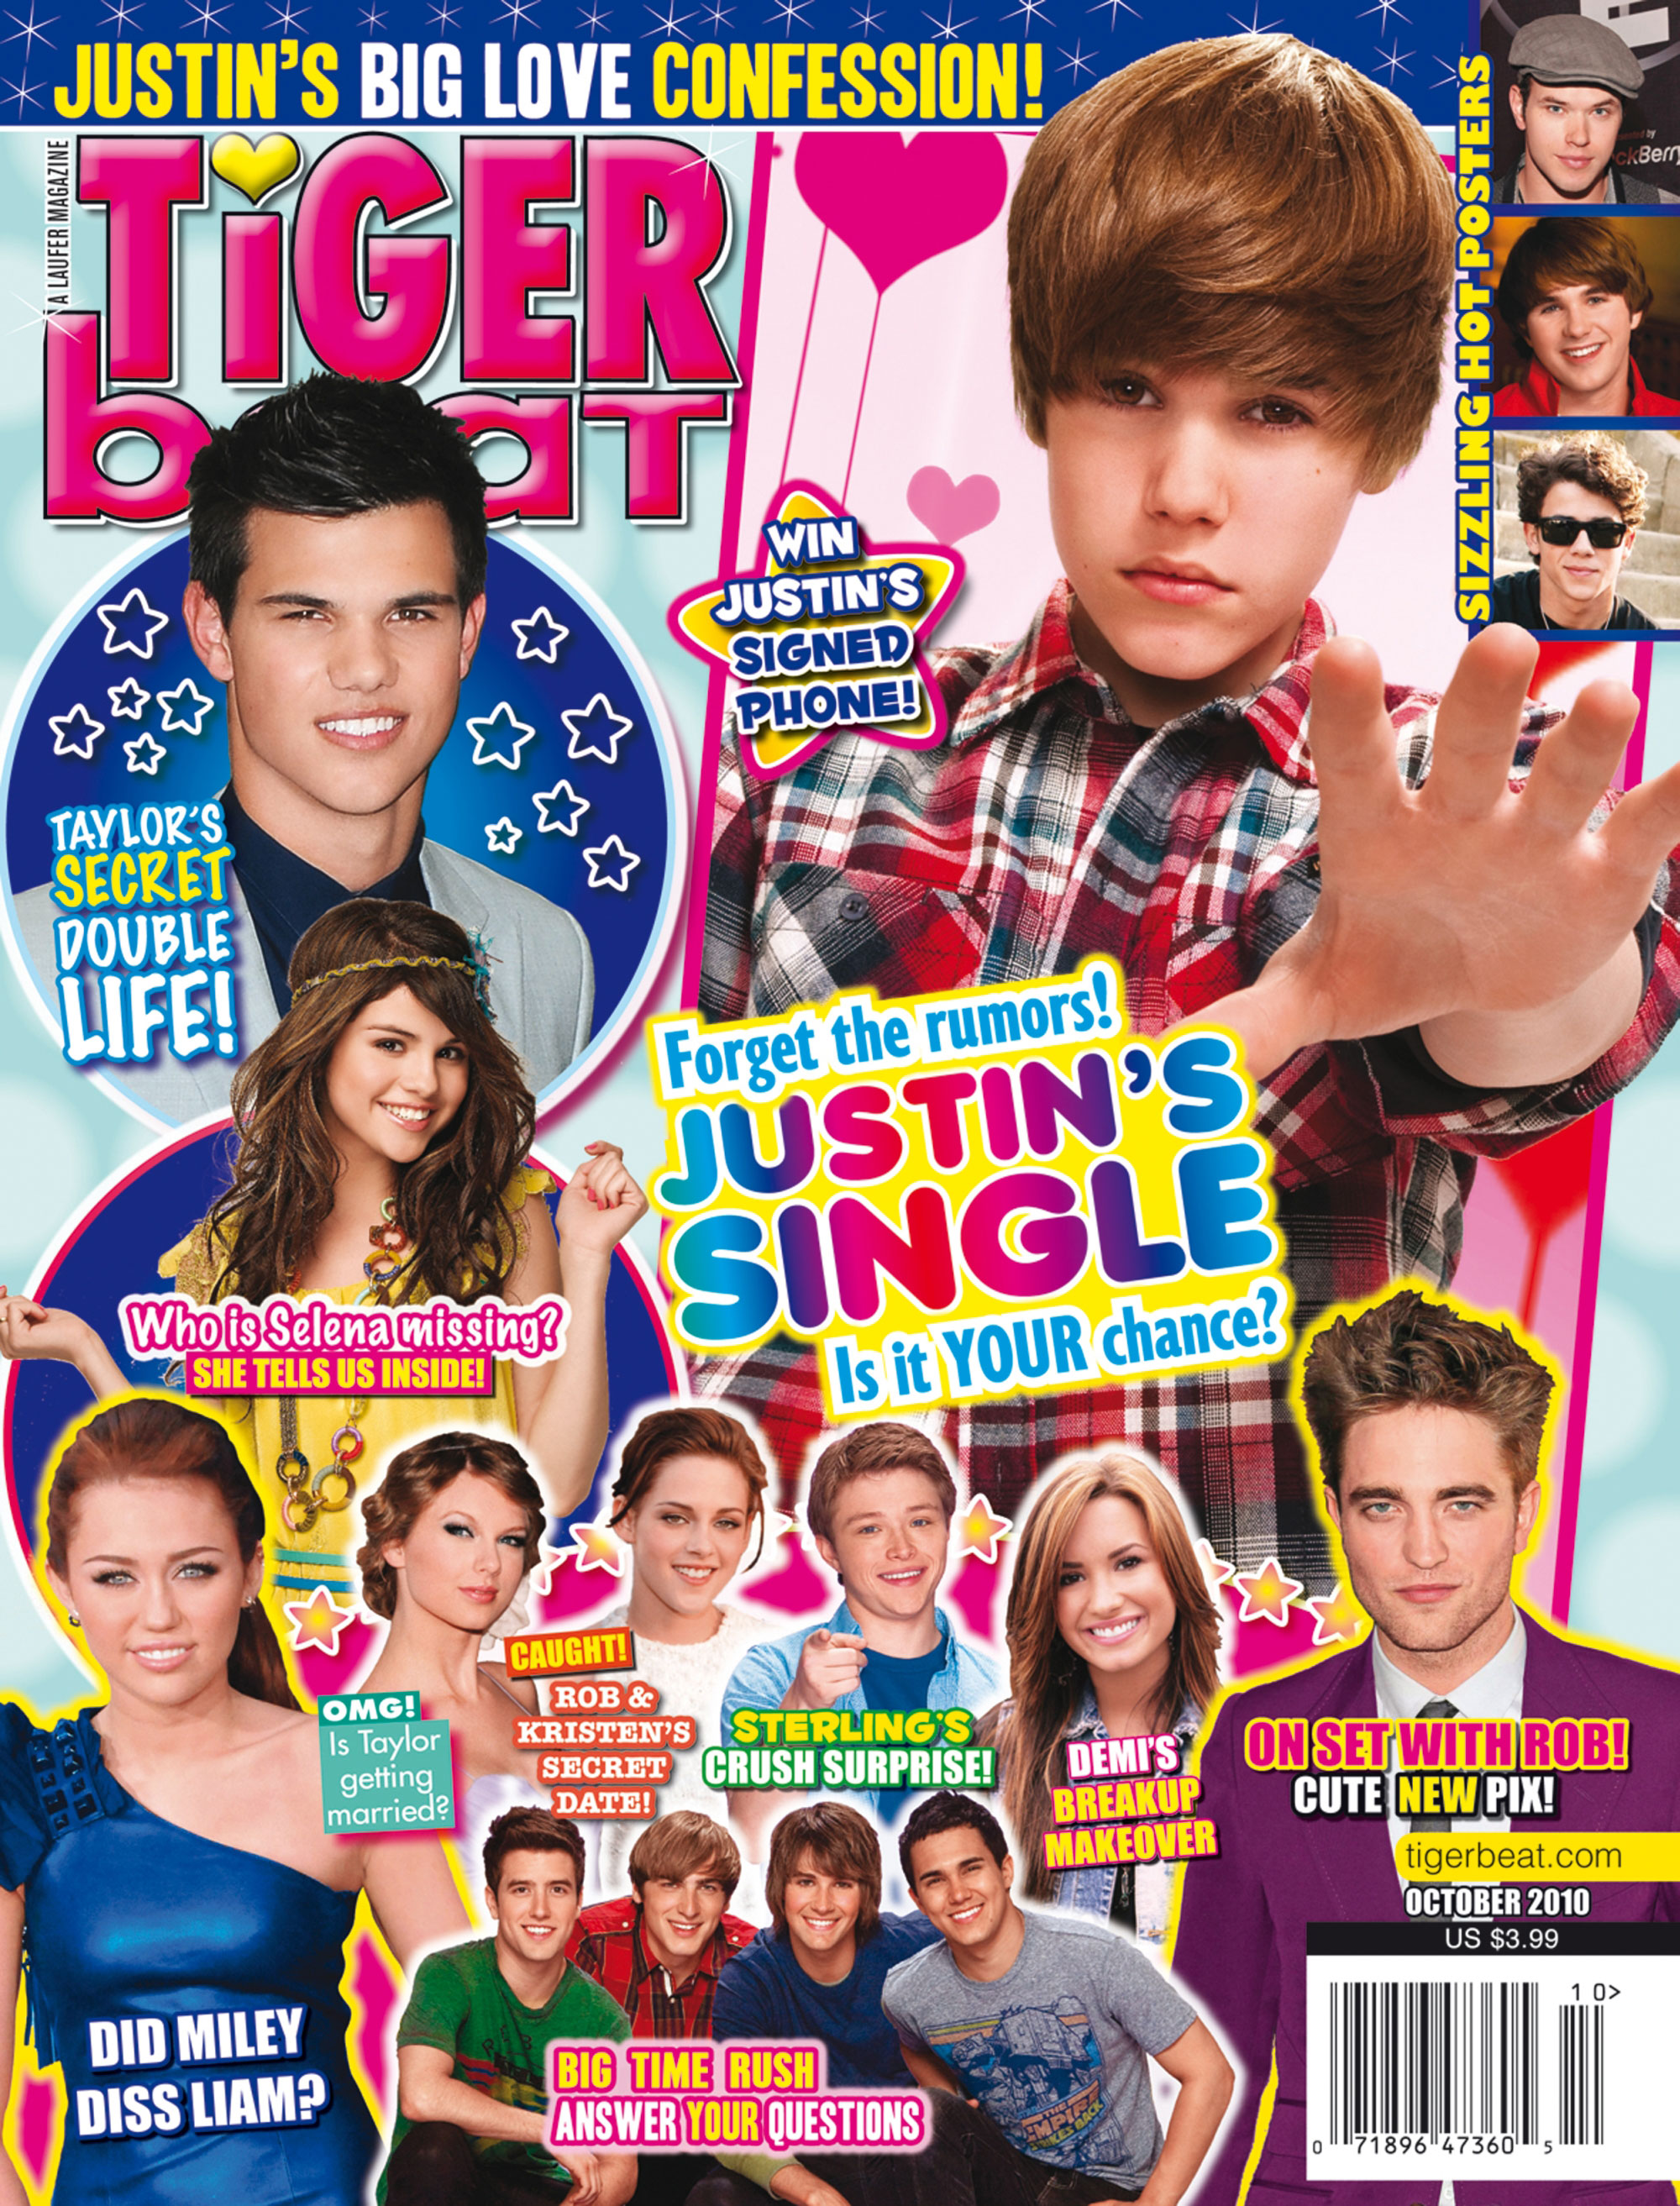 Women and advertising and teen magazines